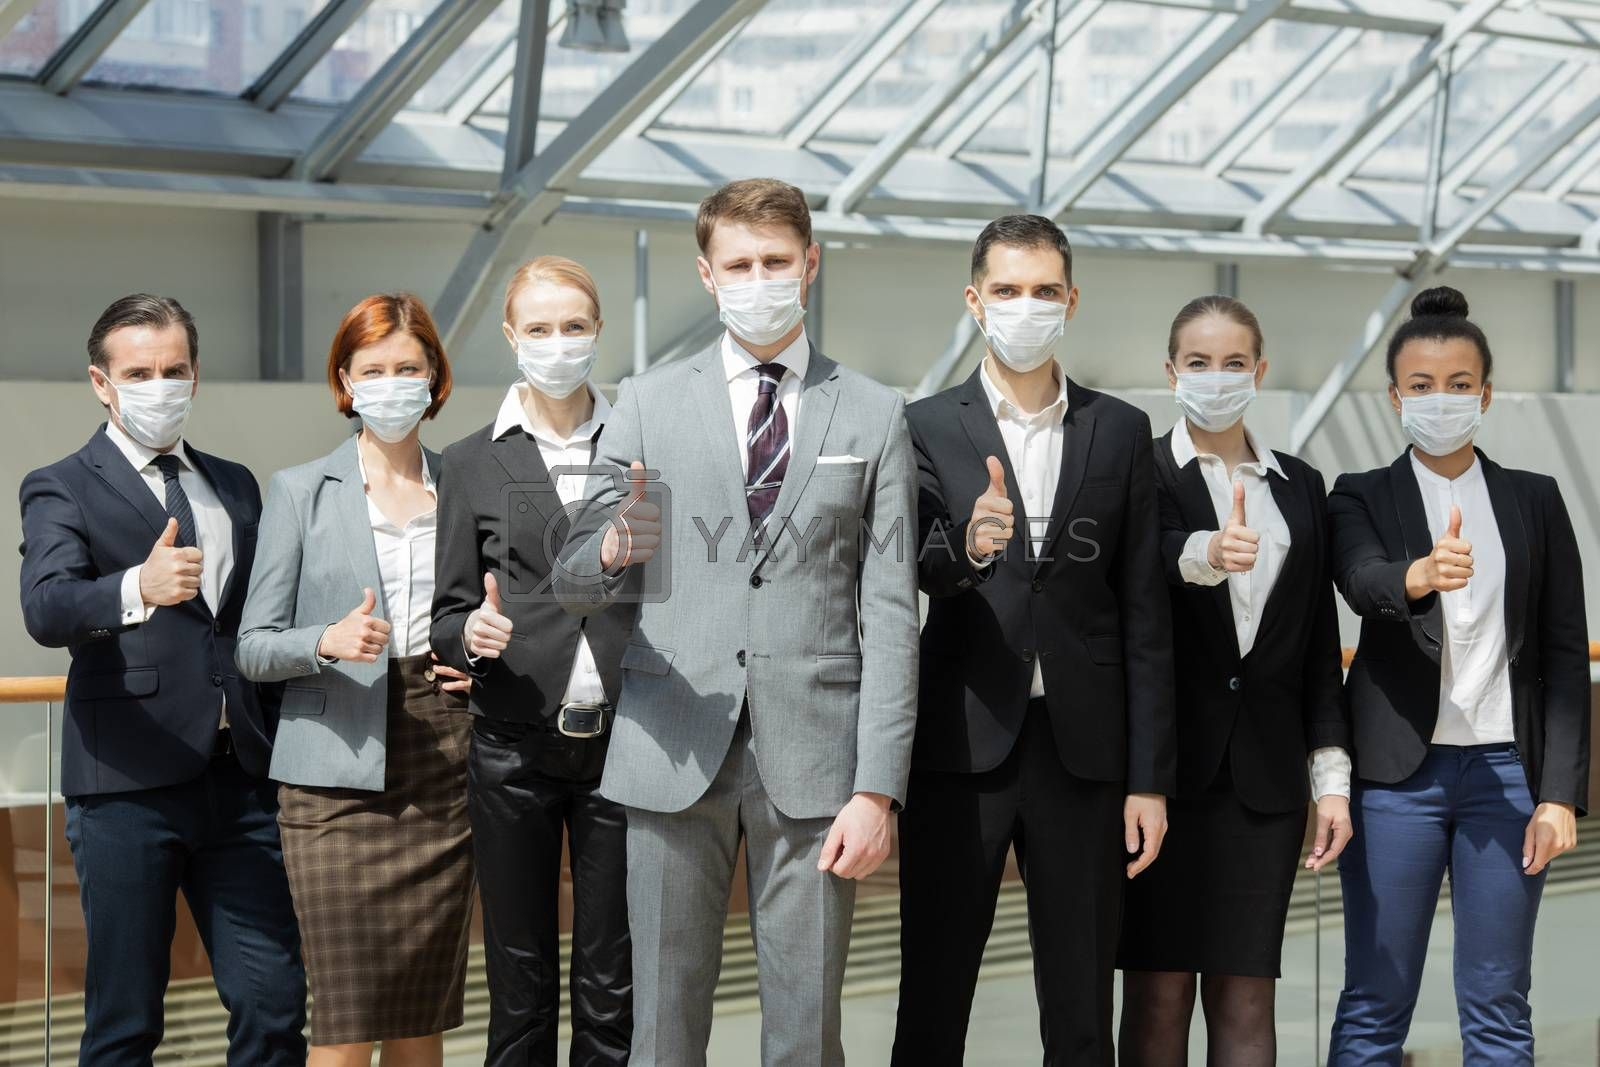 Successful business people wearing masks by ALotOfPeople